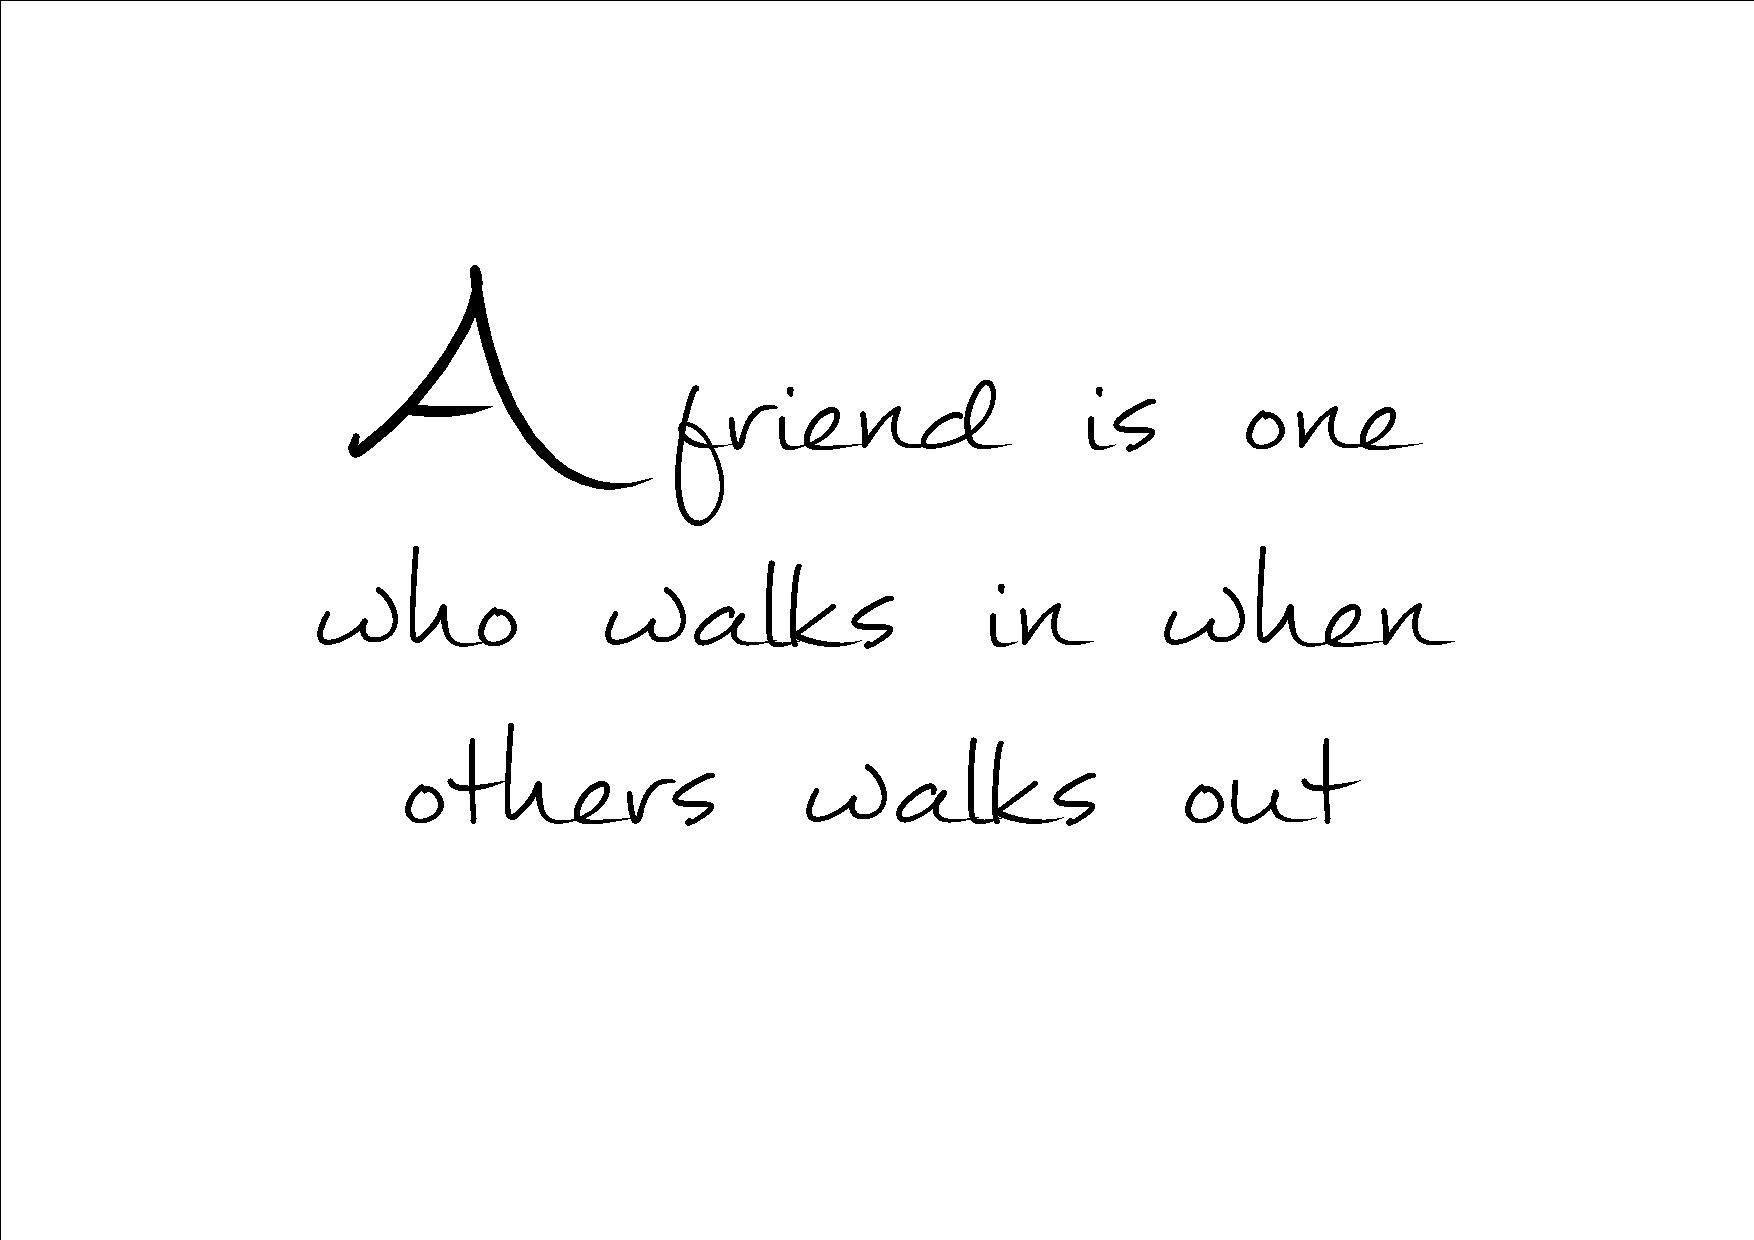 A friend is on who walks in when others walks out